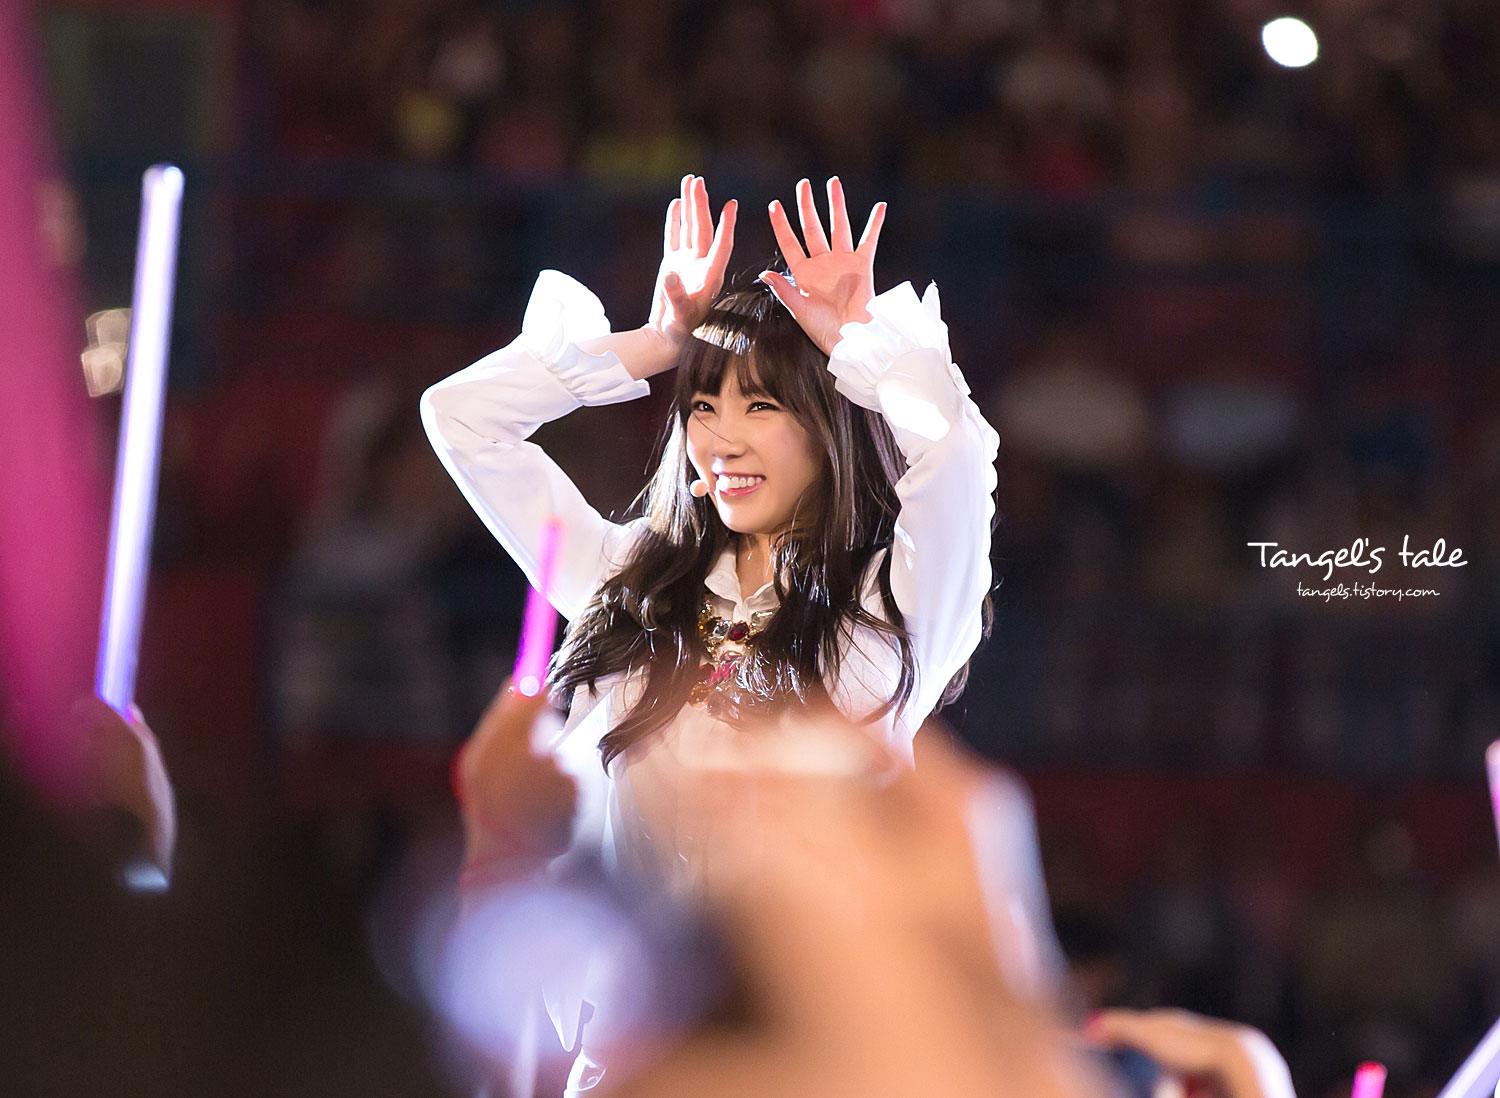 [DL FANSITE] TANGEL'S TALE (Taeyeon's Fansite)